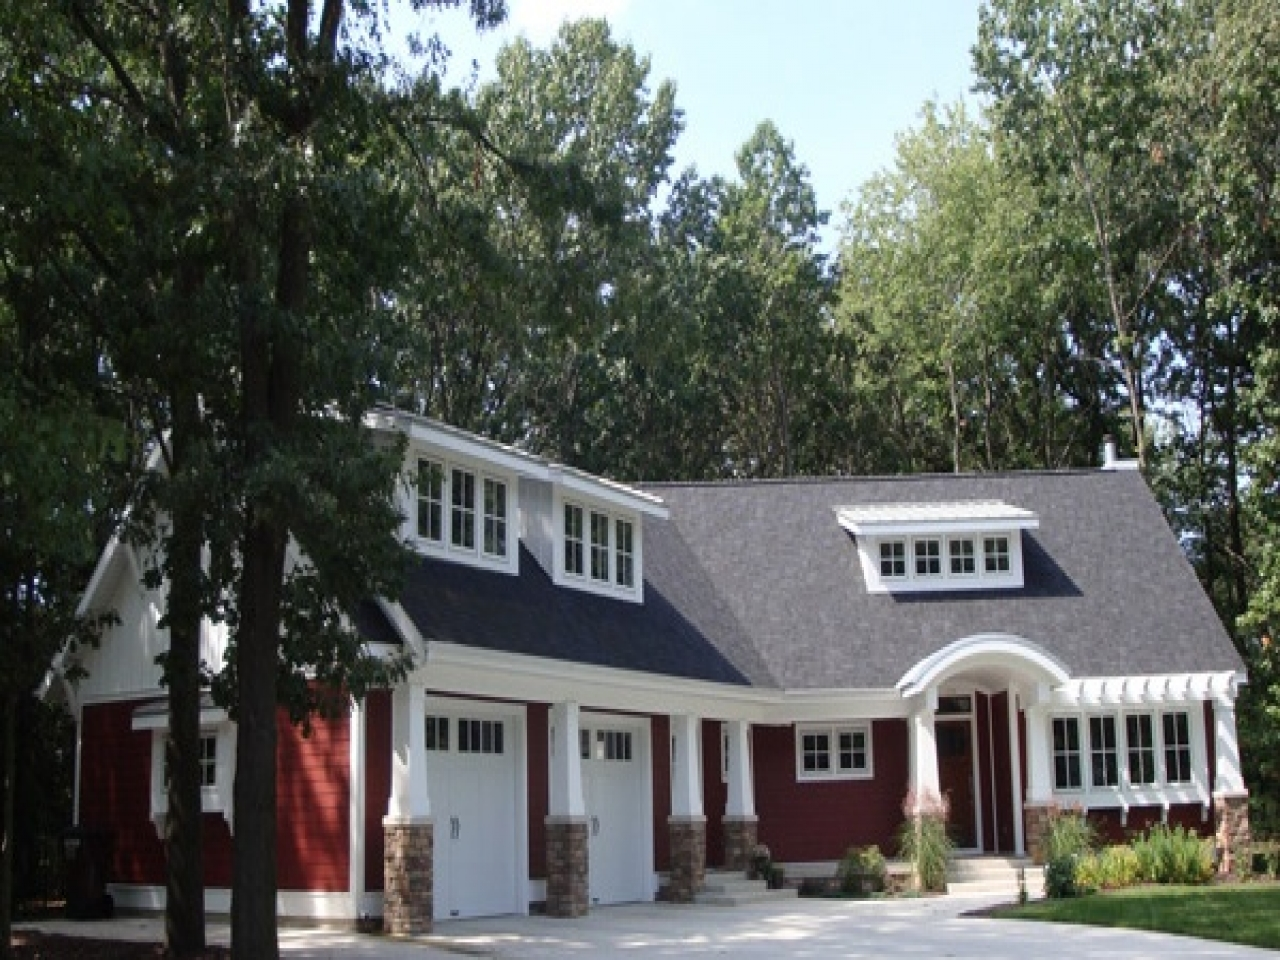 Red cottage housefloor plan no guest suit just bedrooms for Red cottage house plans